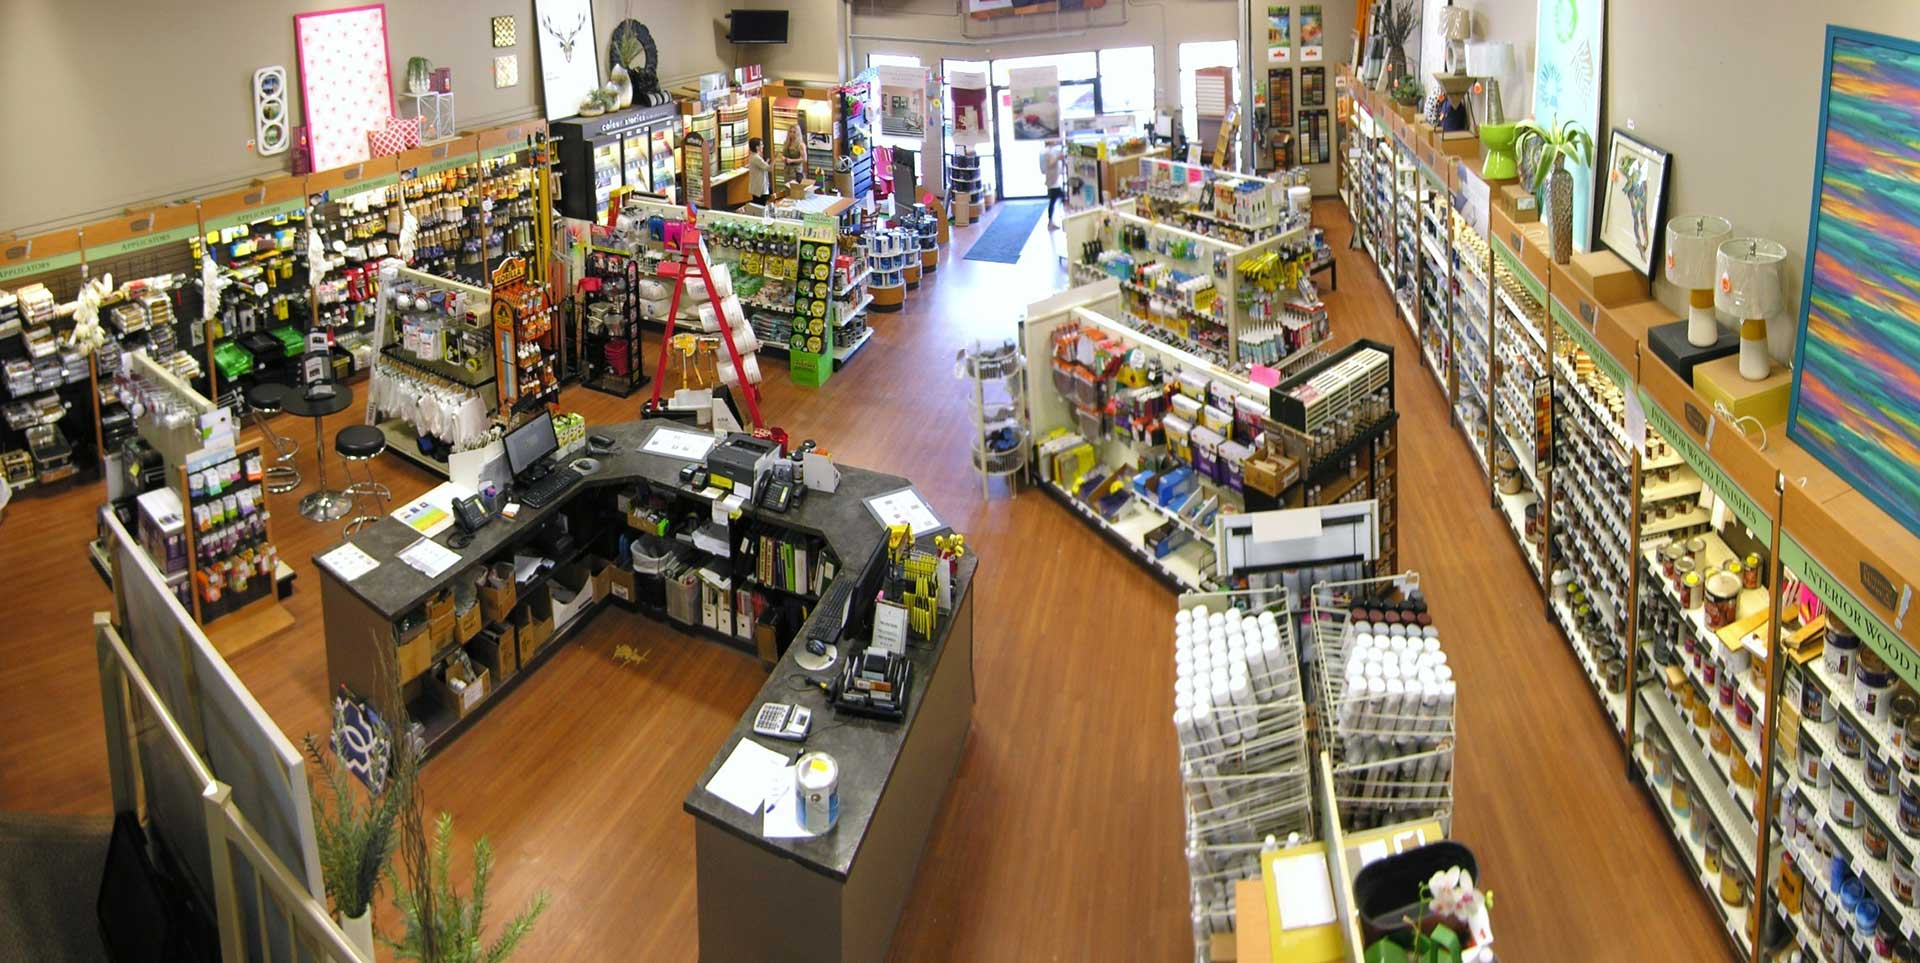 The inside of a paint store with many shelves of paint cans and painting supplies